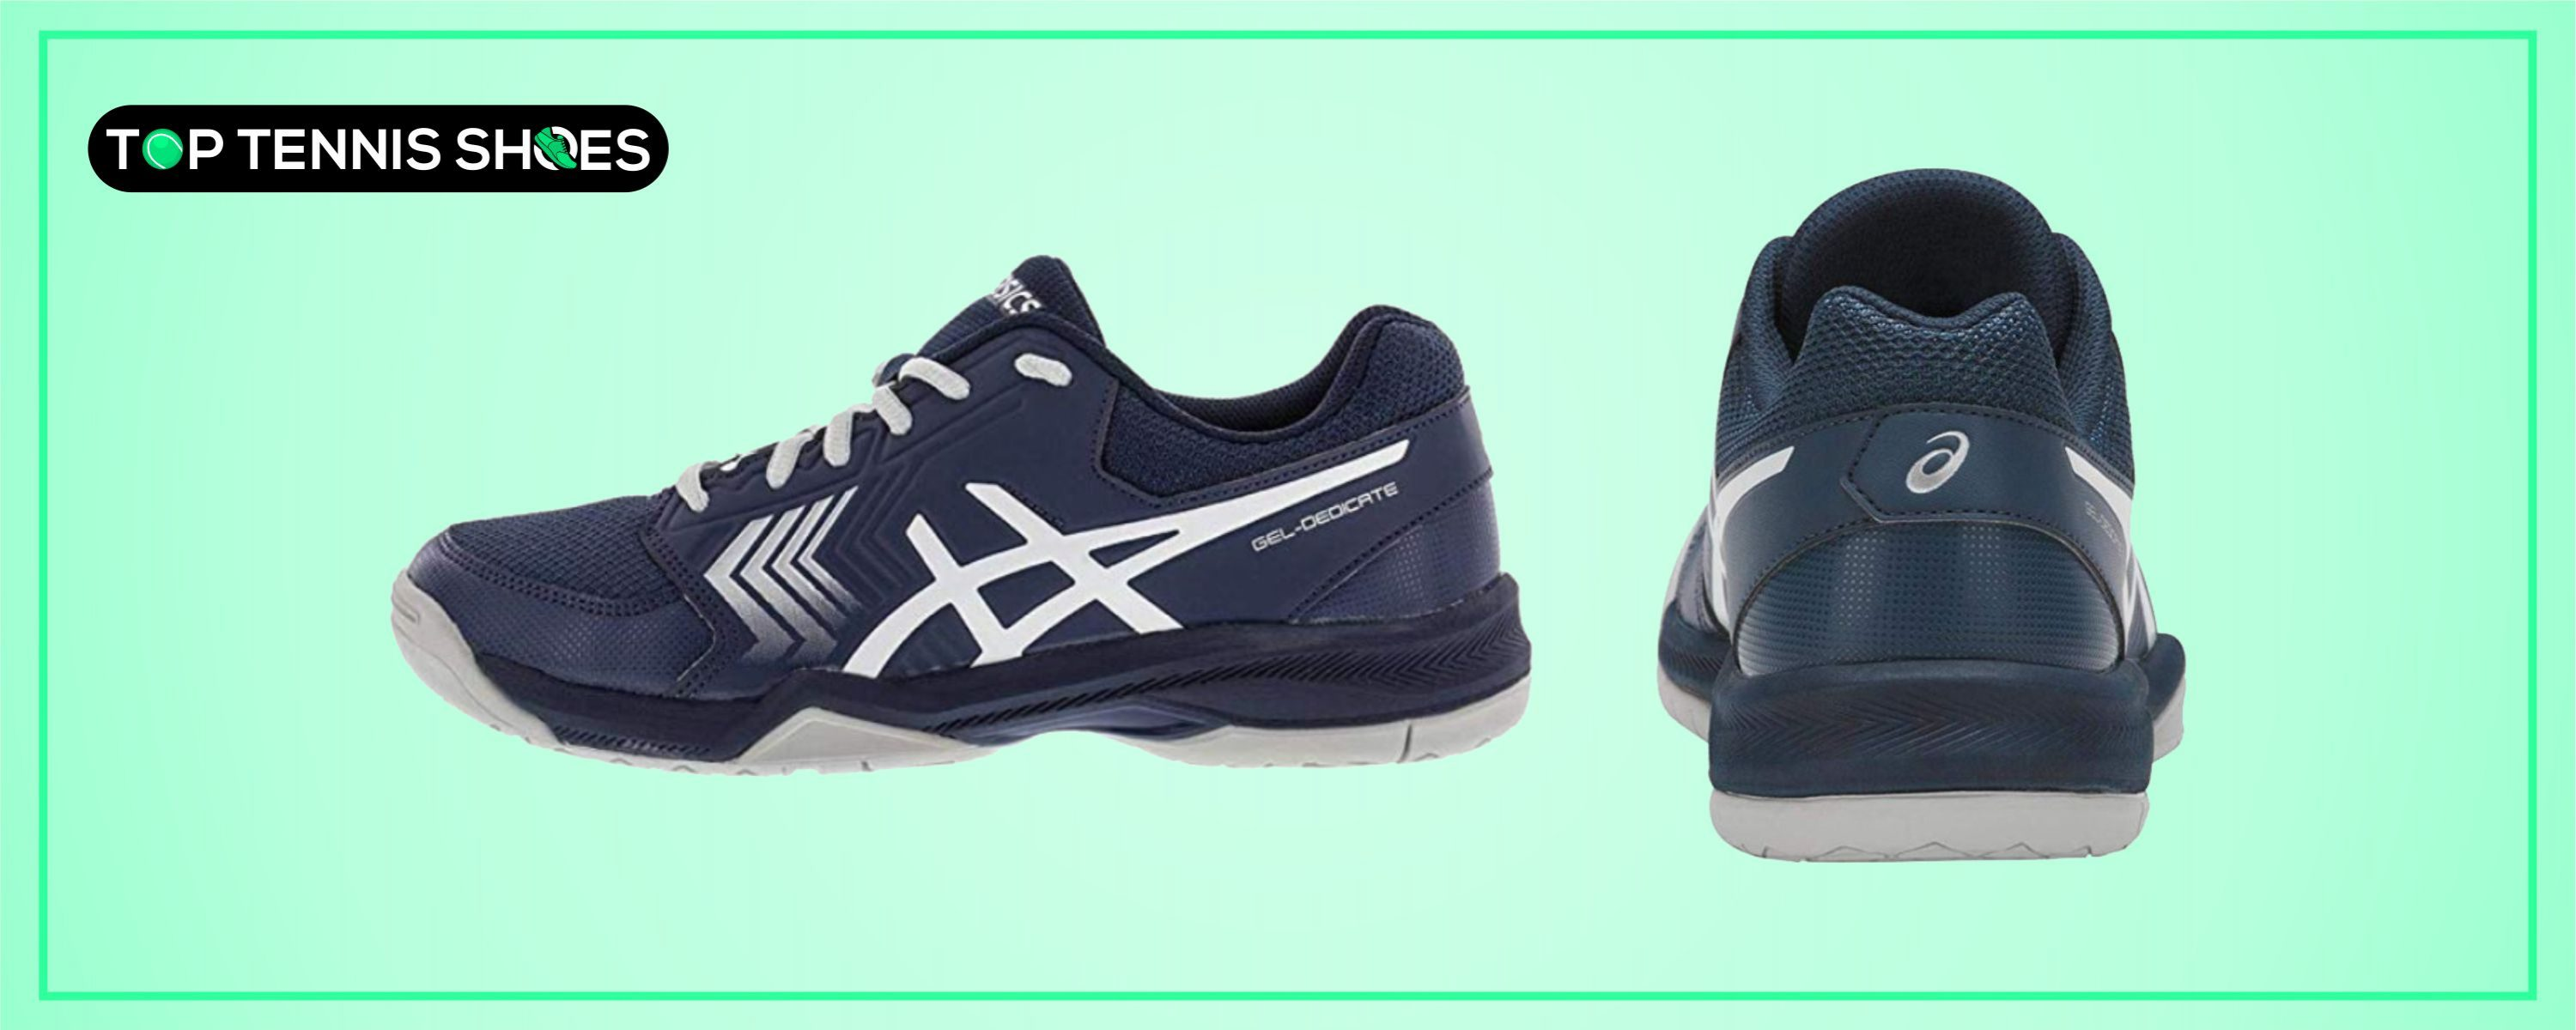 Top Tennis Shoes for Hard Court